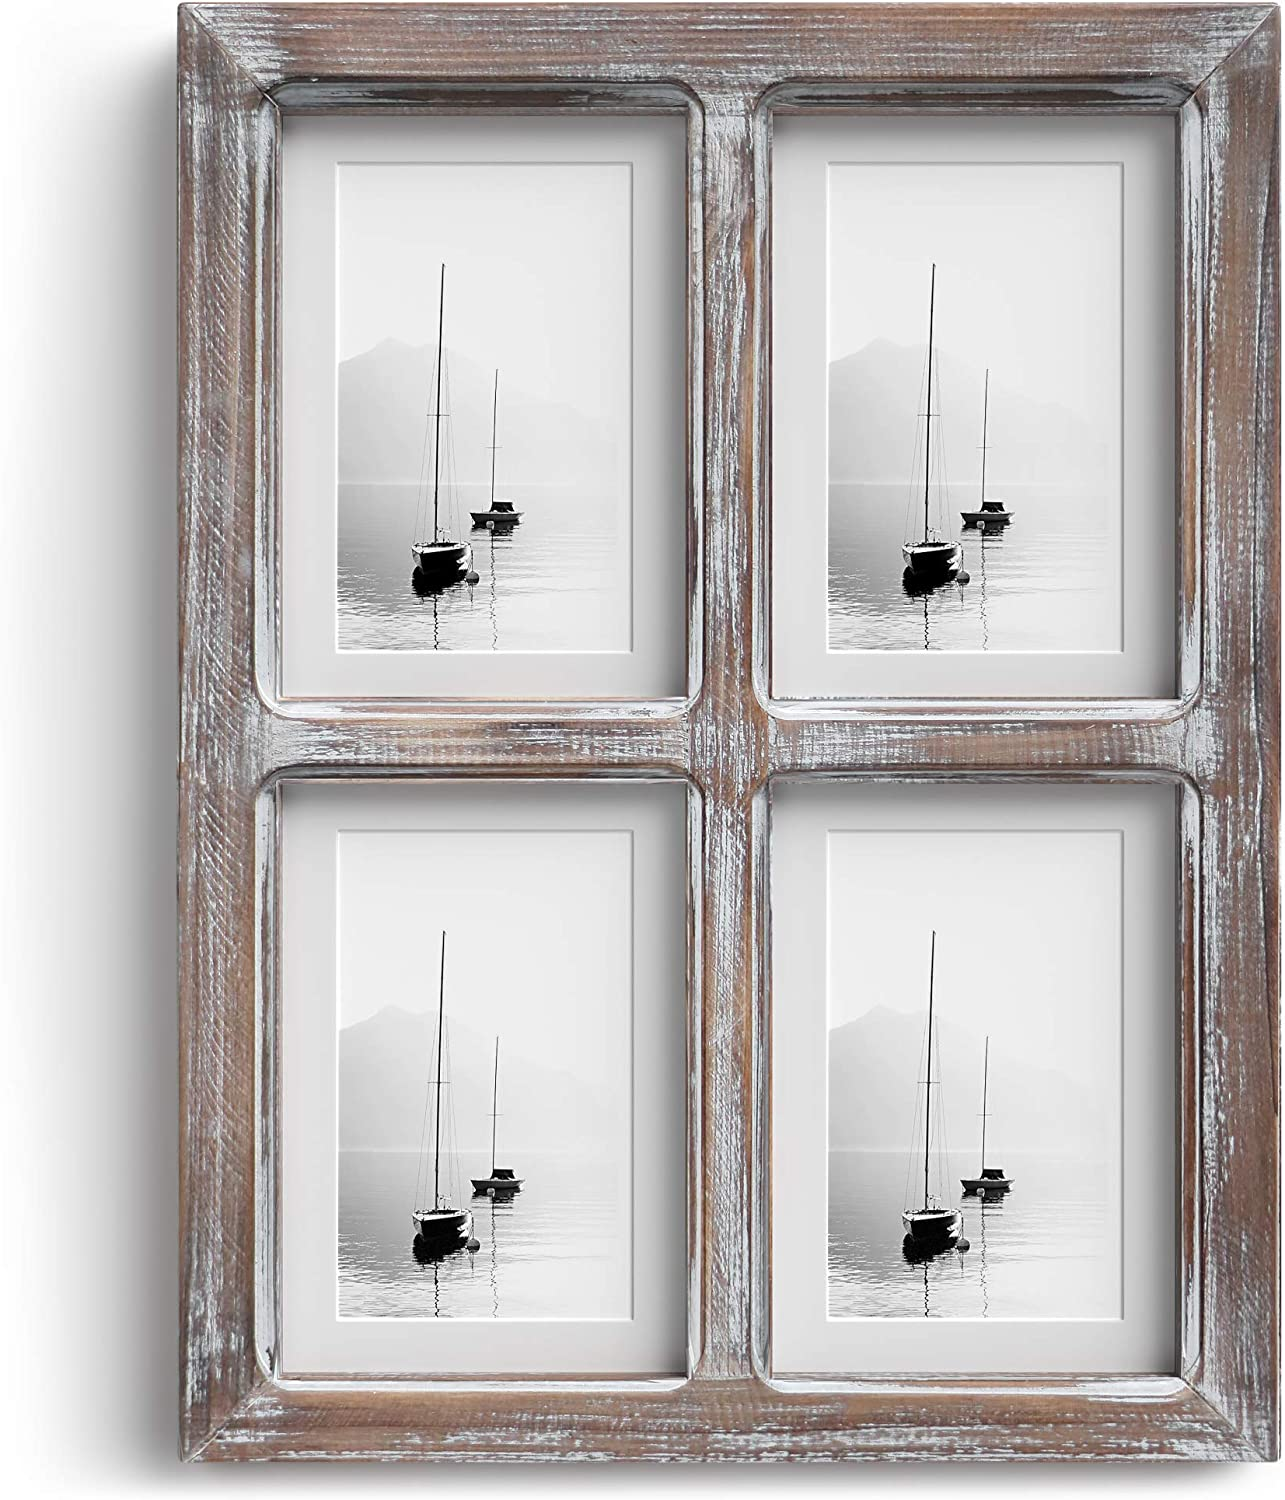 """Barnyard Designs Rustic Multi Picture Window Pane Frame, Distressed Wood Frame for Multiple Photos, Family Photo Collage Board, Farmhouse Wall Decor, Brown, 16"""" x 12"""""""